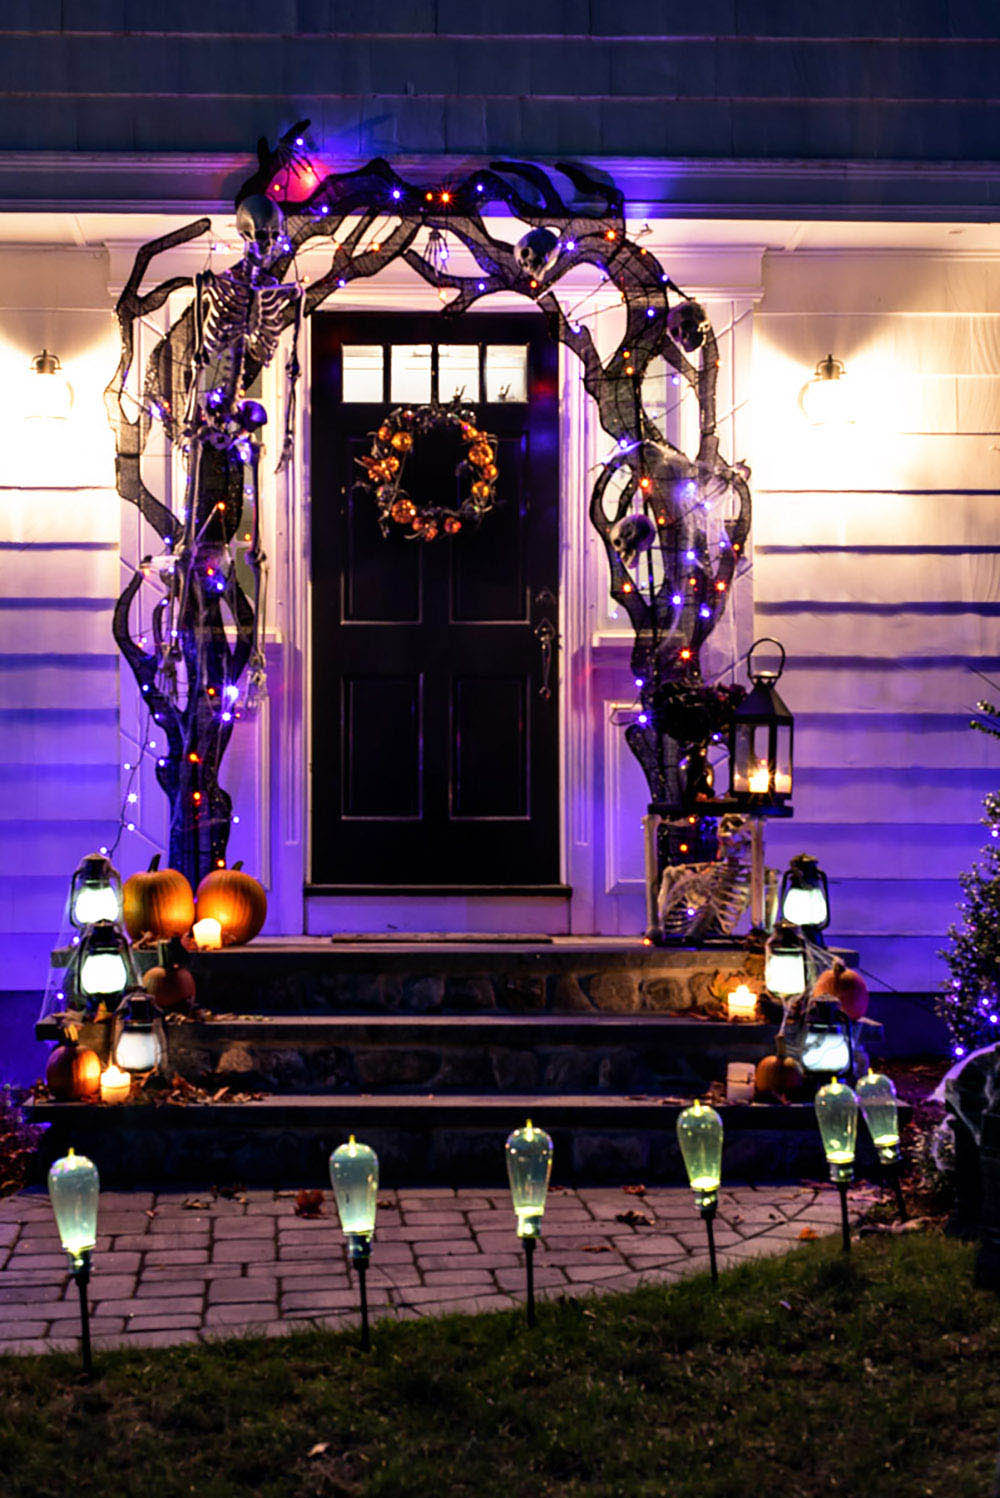 A night view of the front door with halloween lights